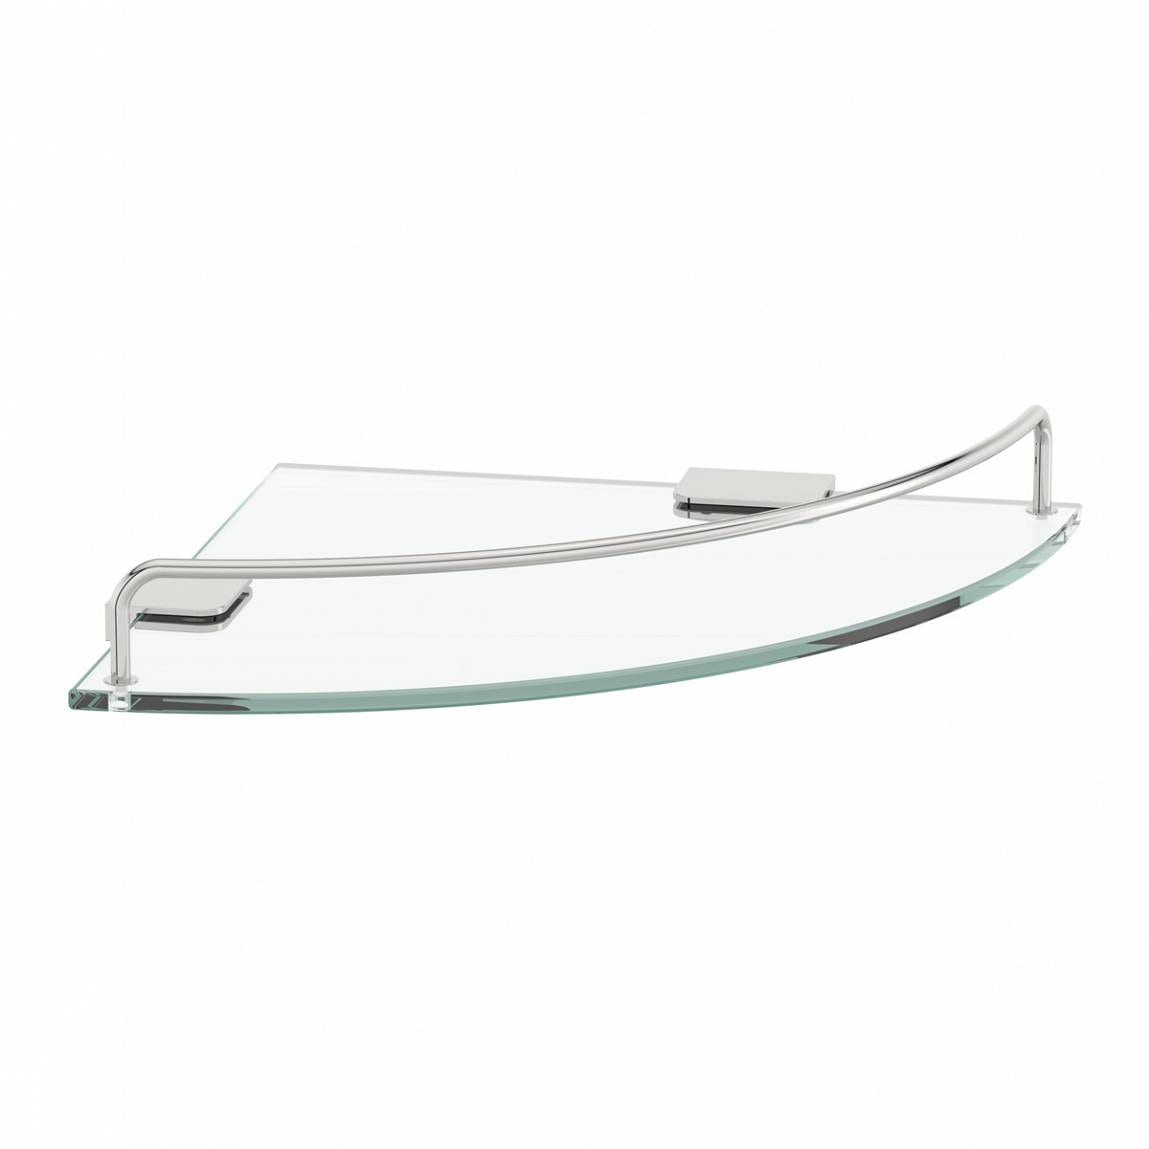 Orchard Options round corner glass shelf